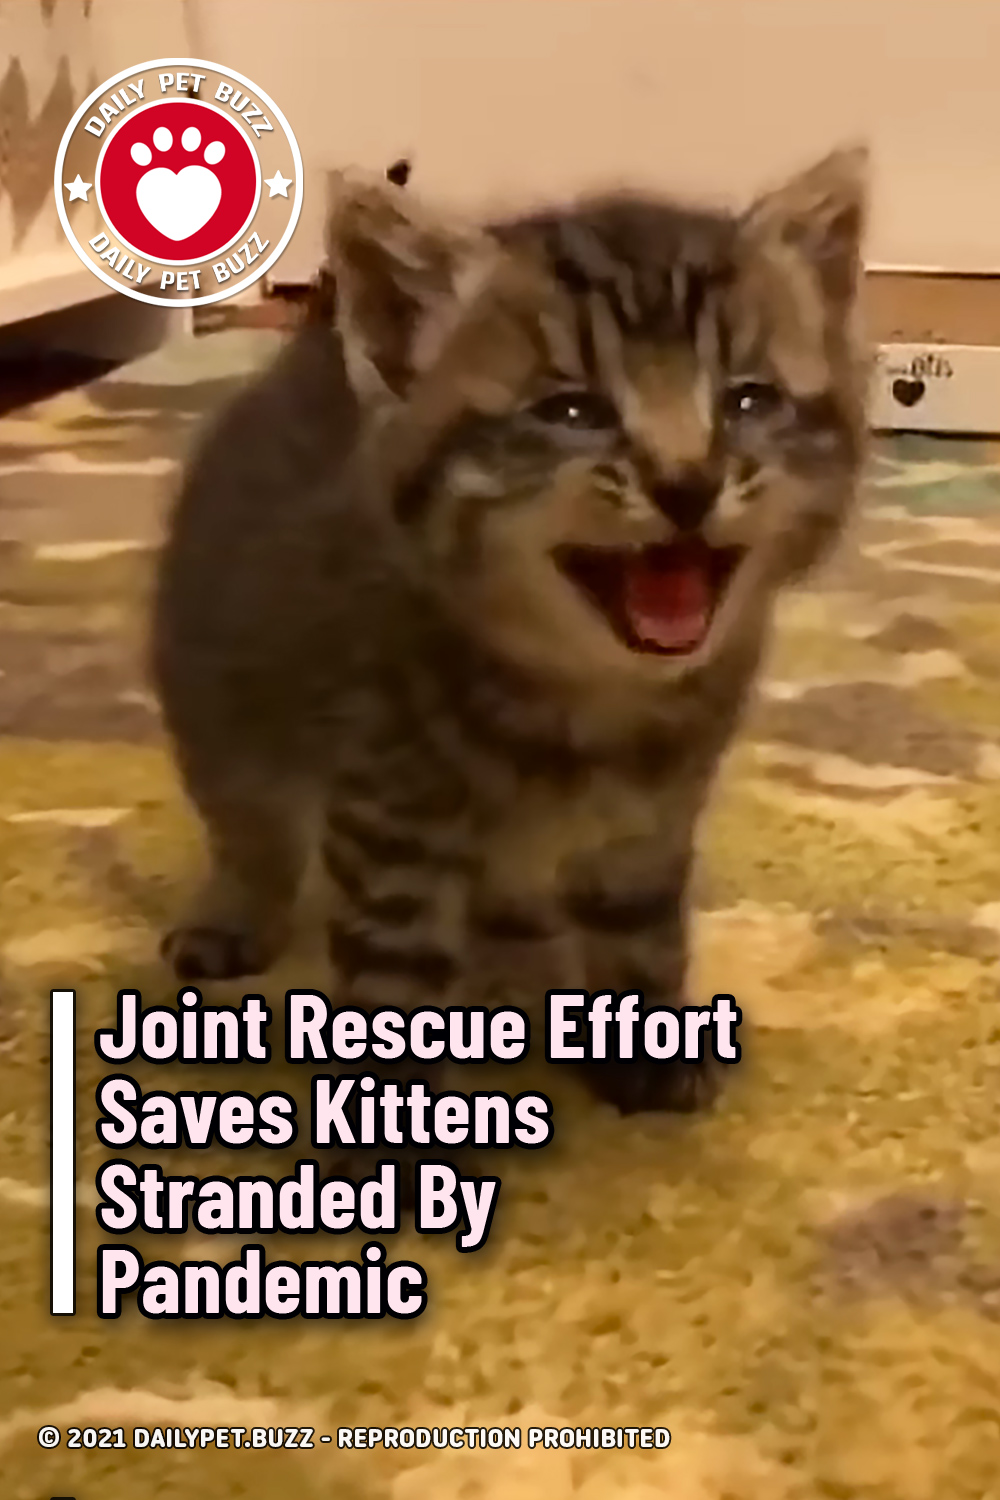 Joint Rescue Effort Saves Kittens Stranded By Pandemic